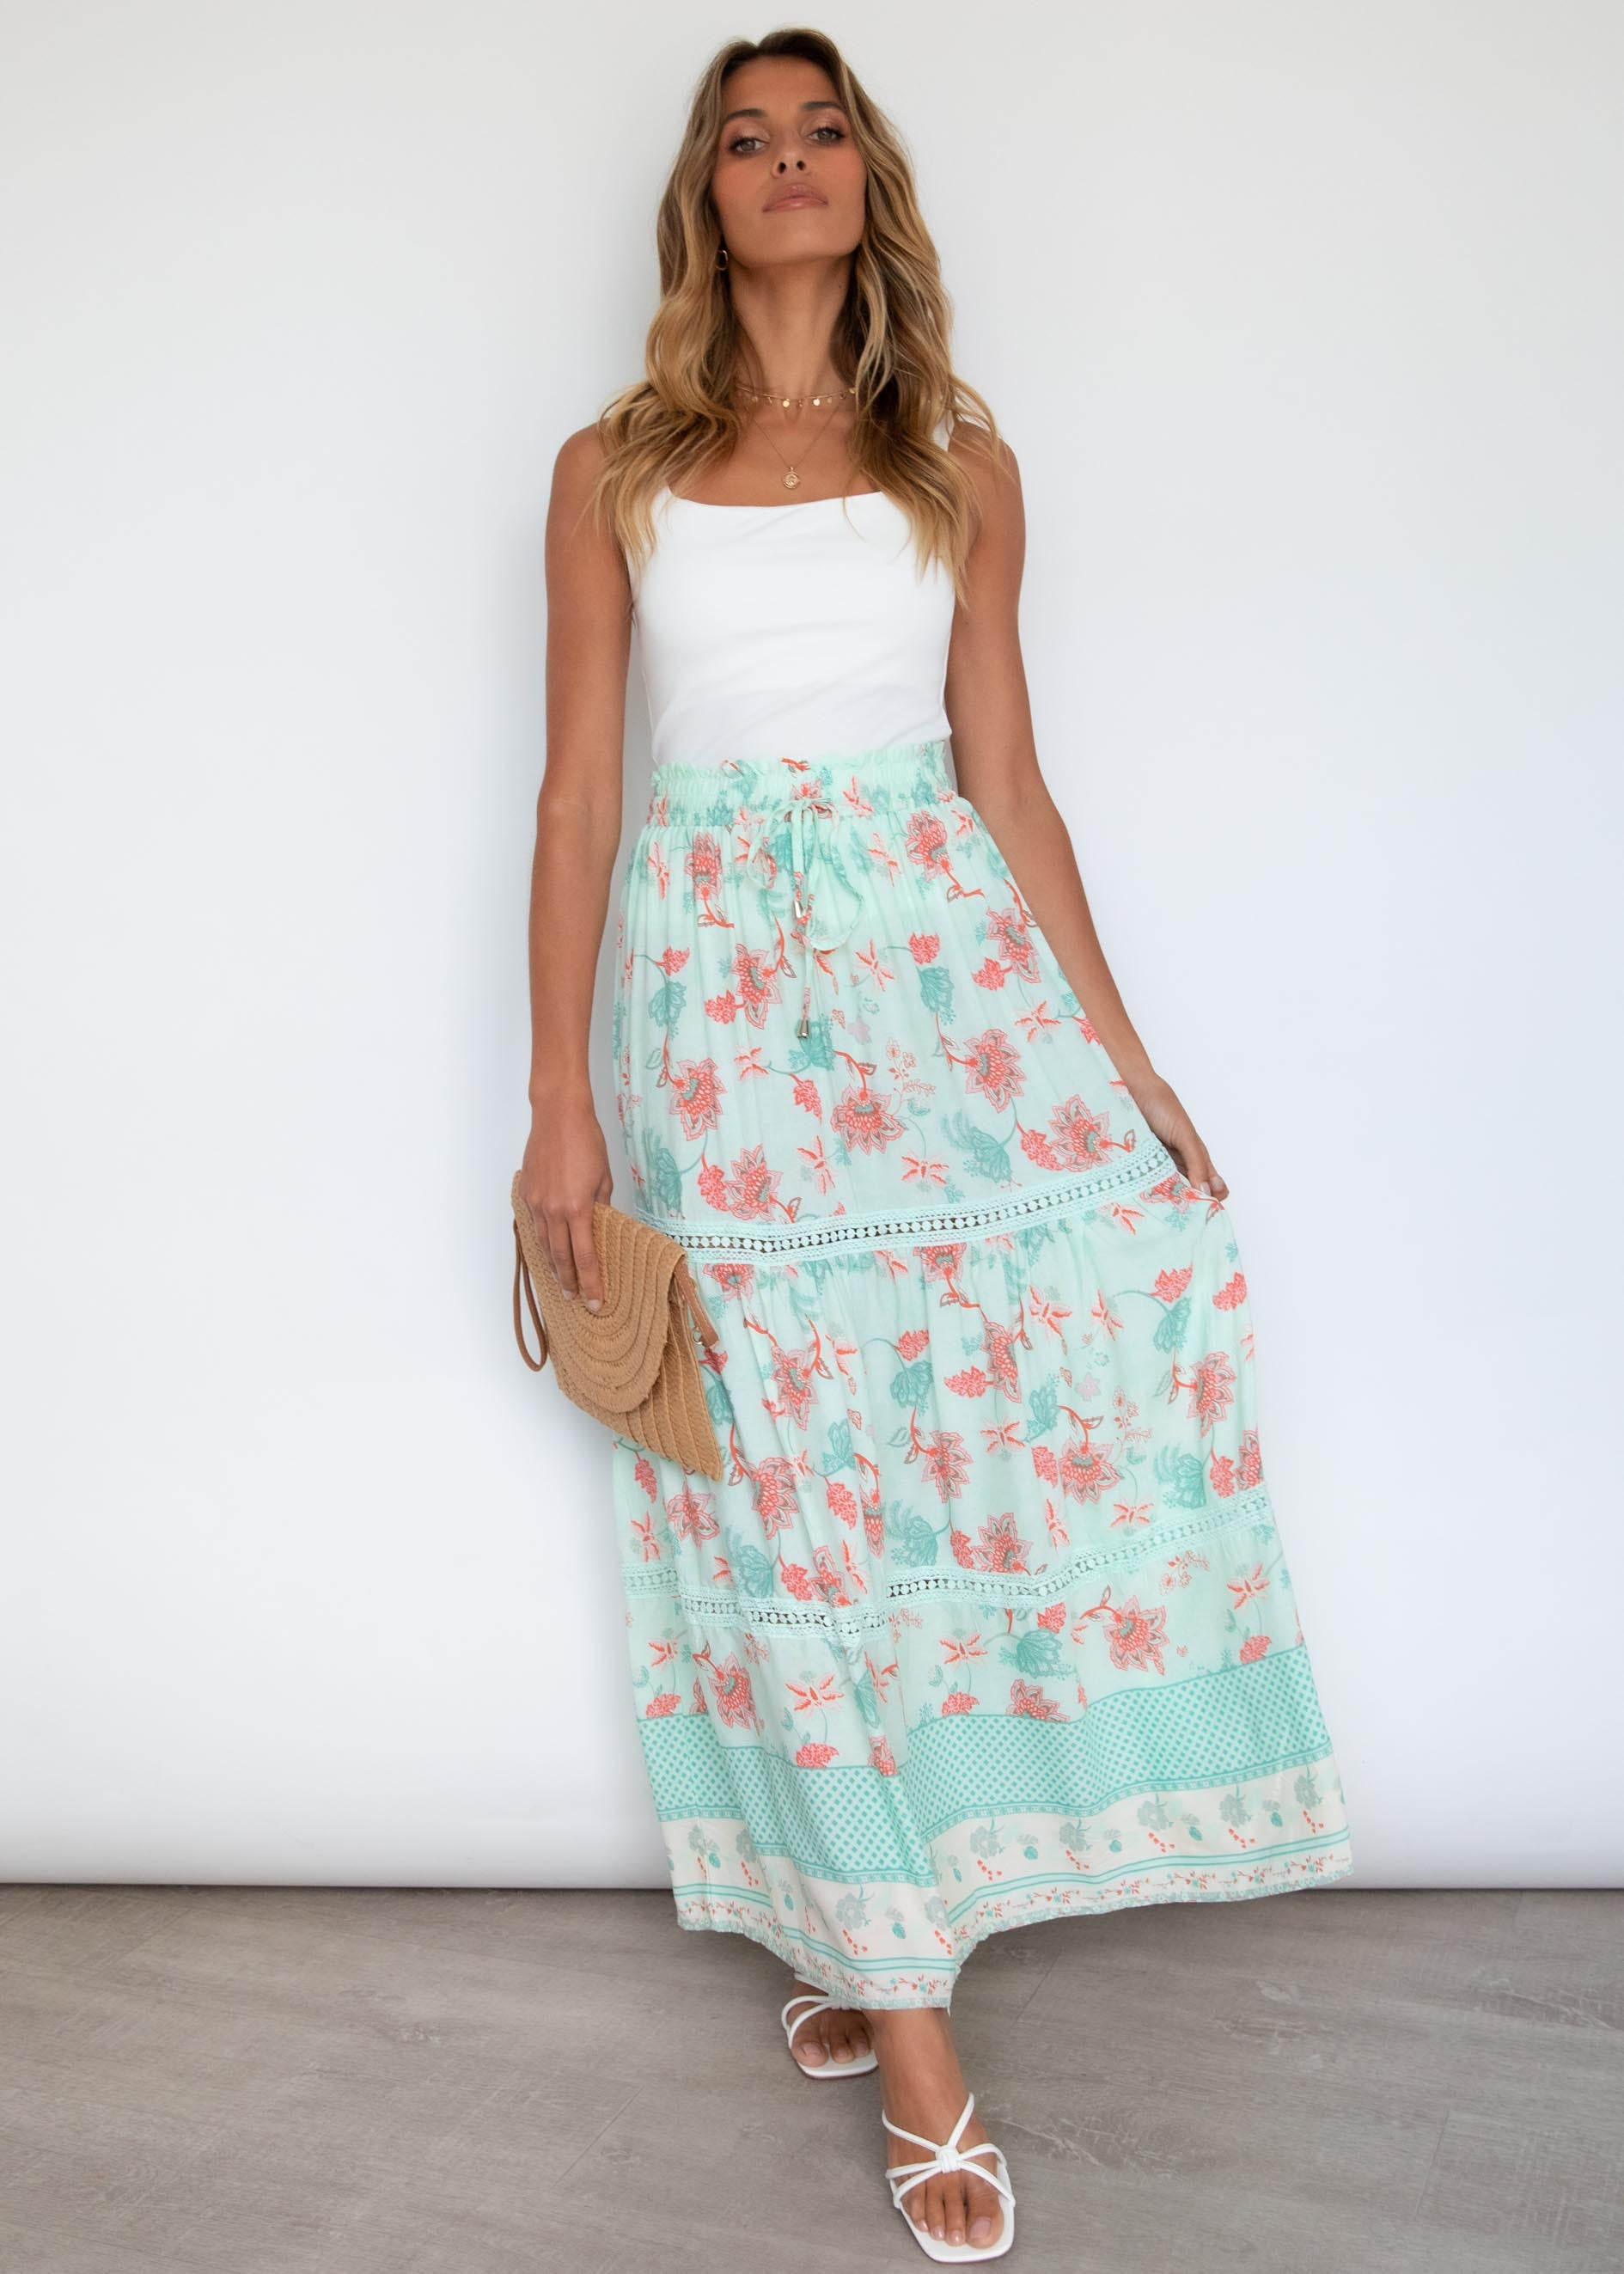 Stellanna Maxi Skirt - Mint Floral